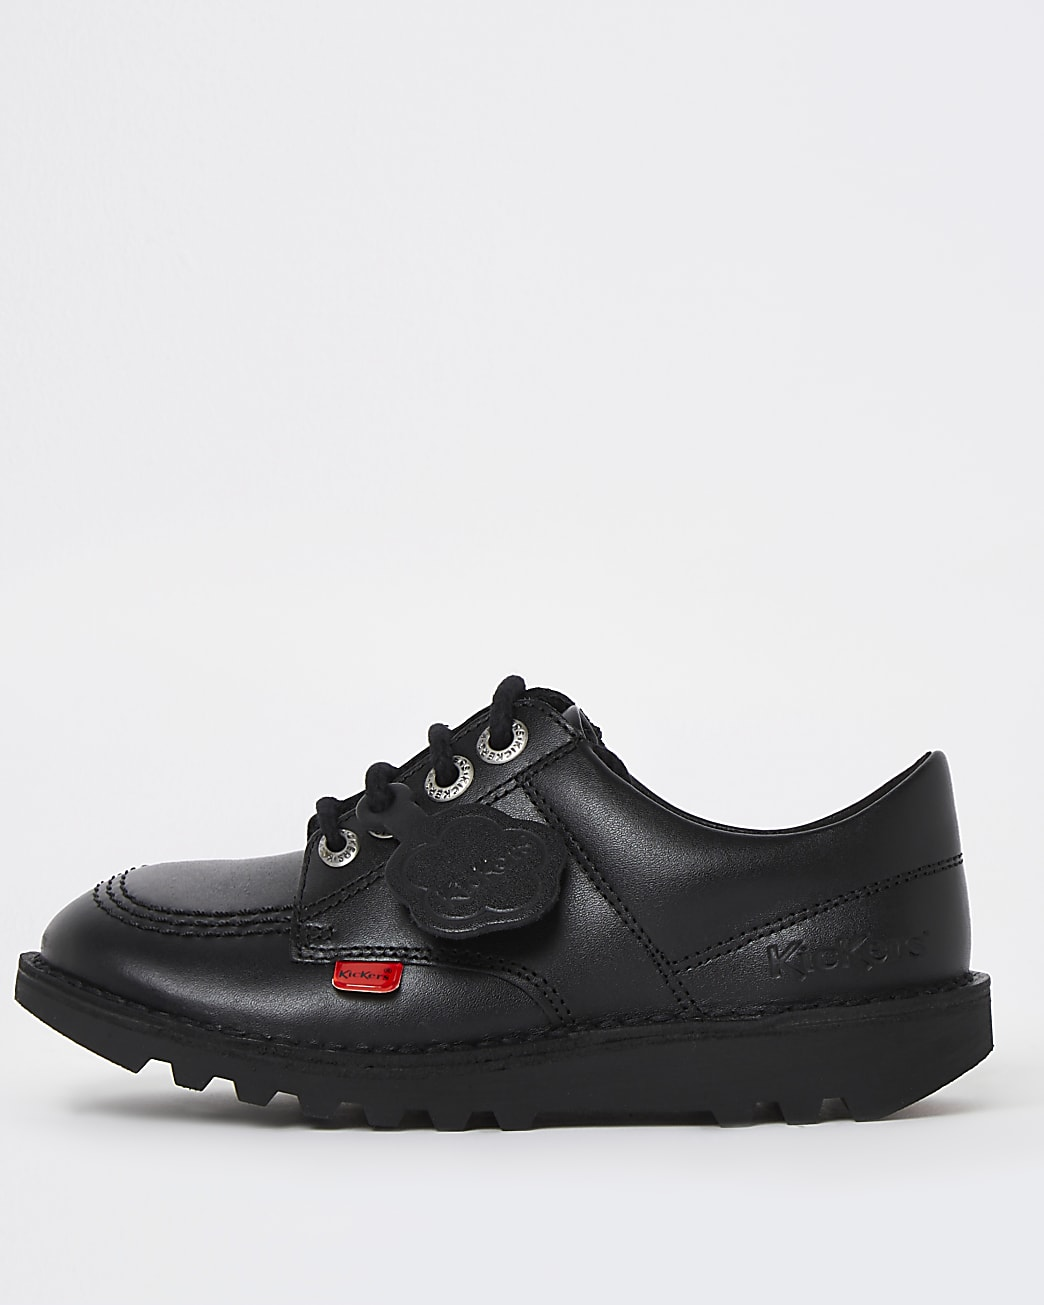 Girls black Kickers lace up shoes